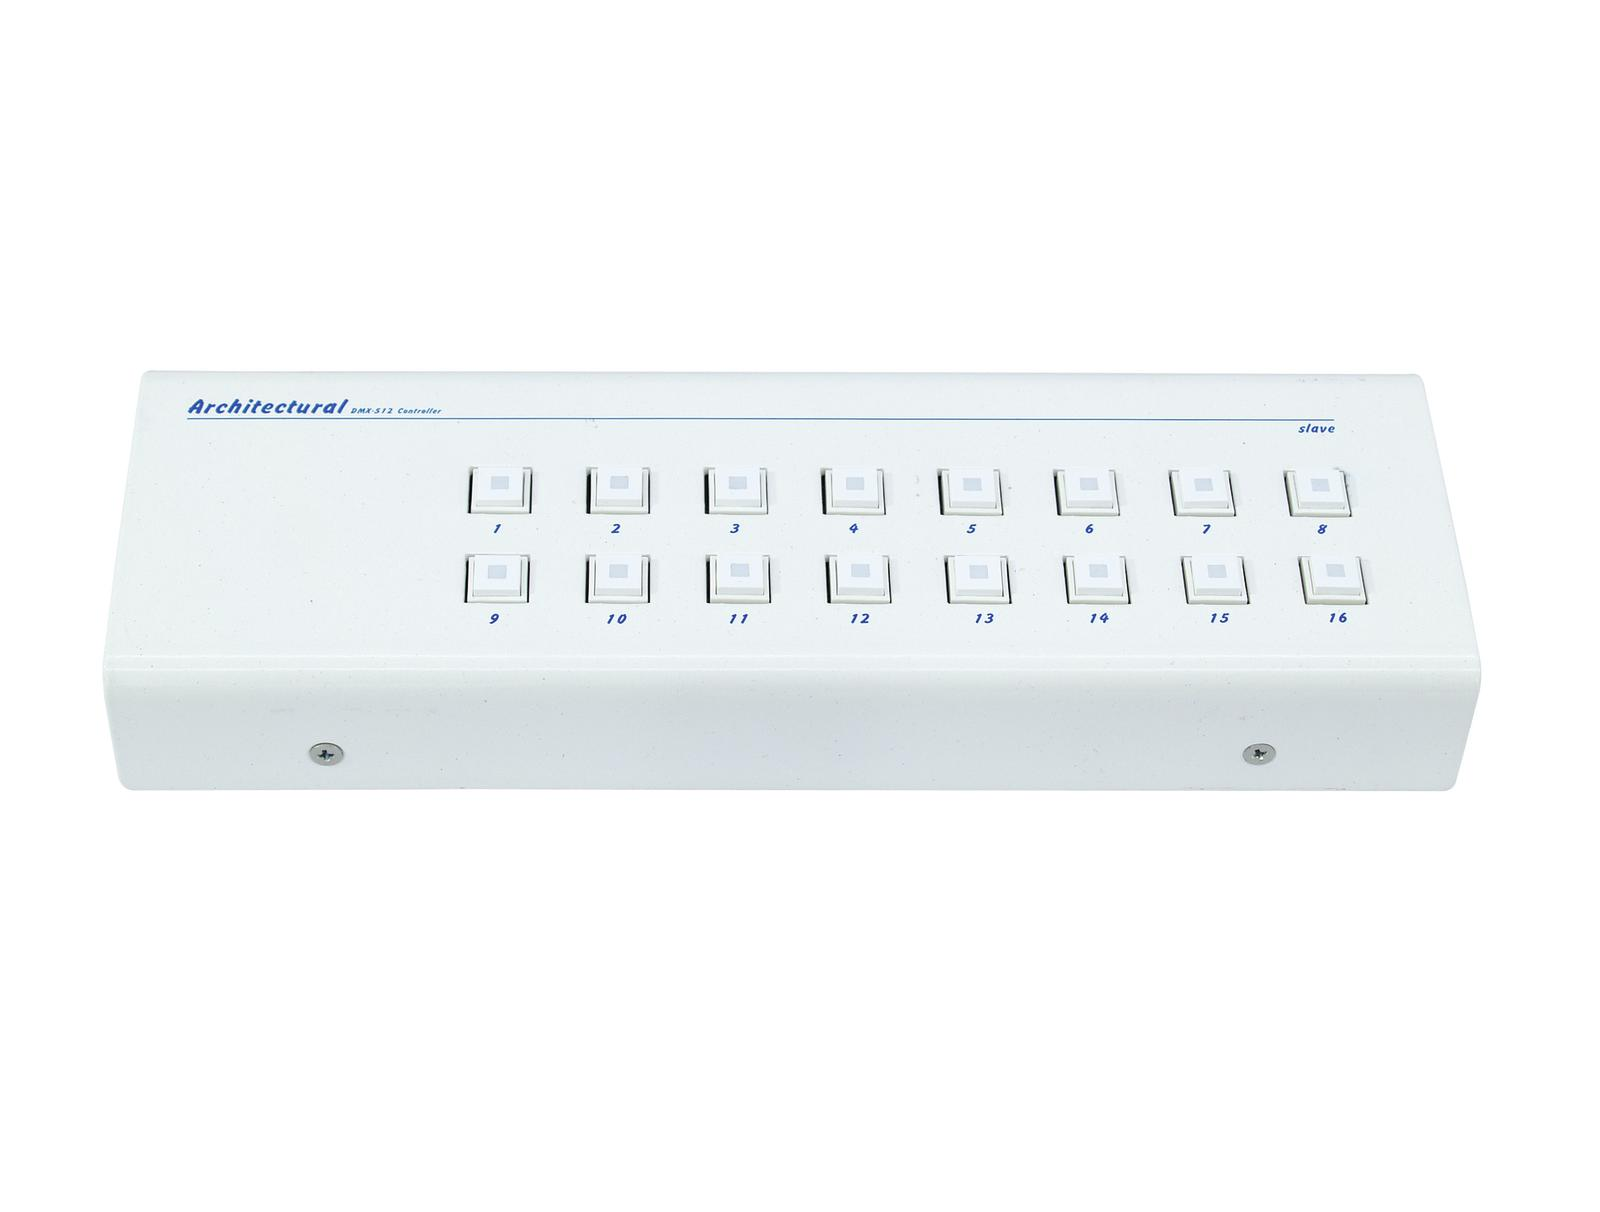 FUTURELIGHT ARC-S Controllo 512